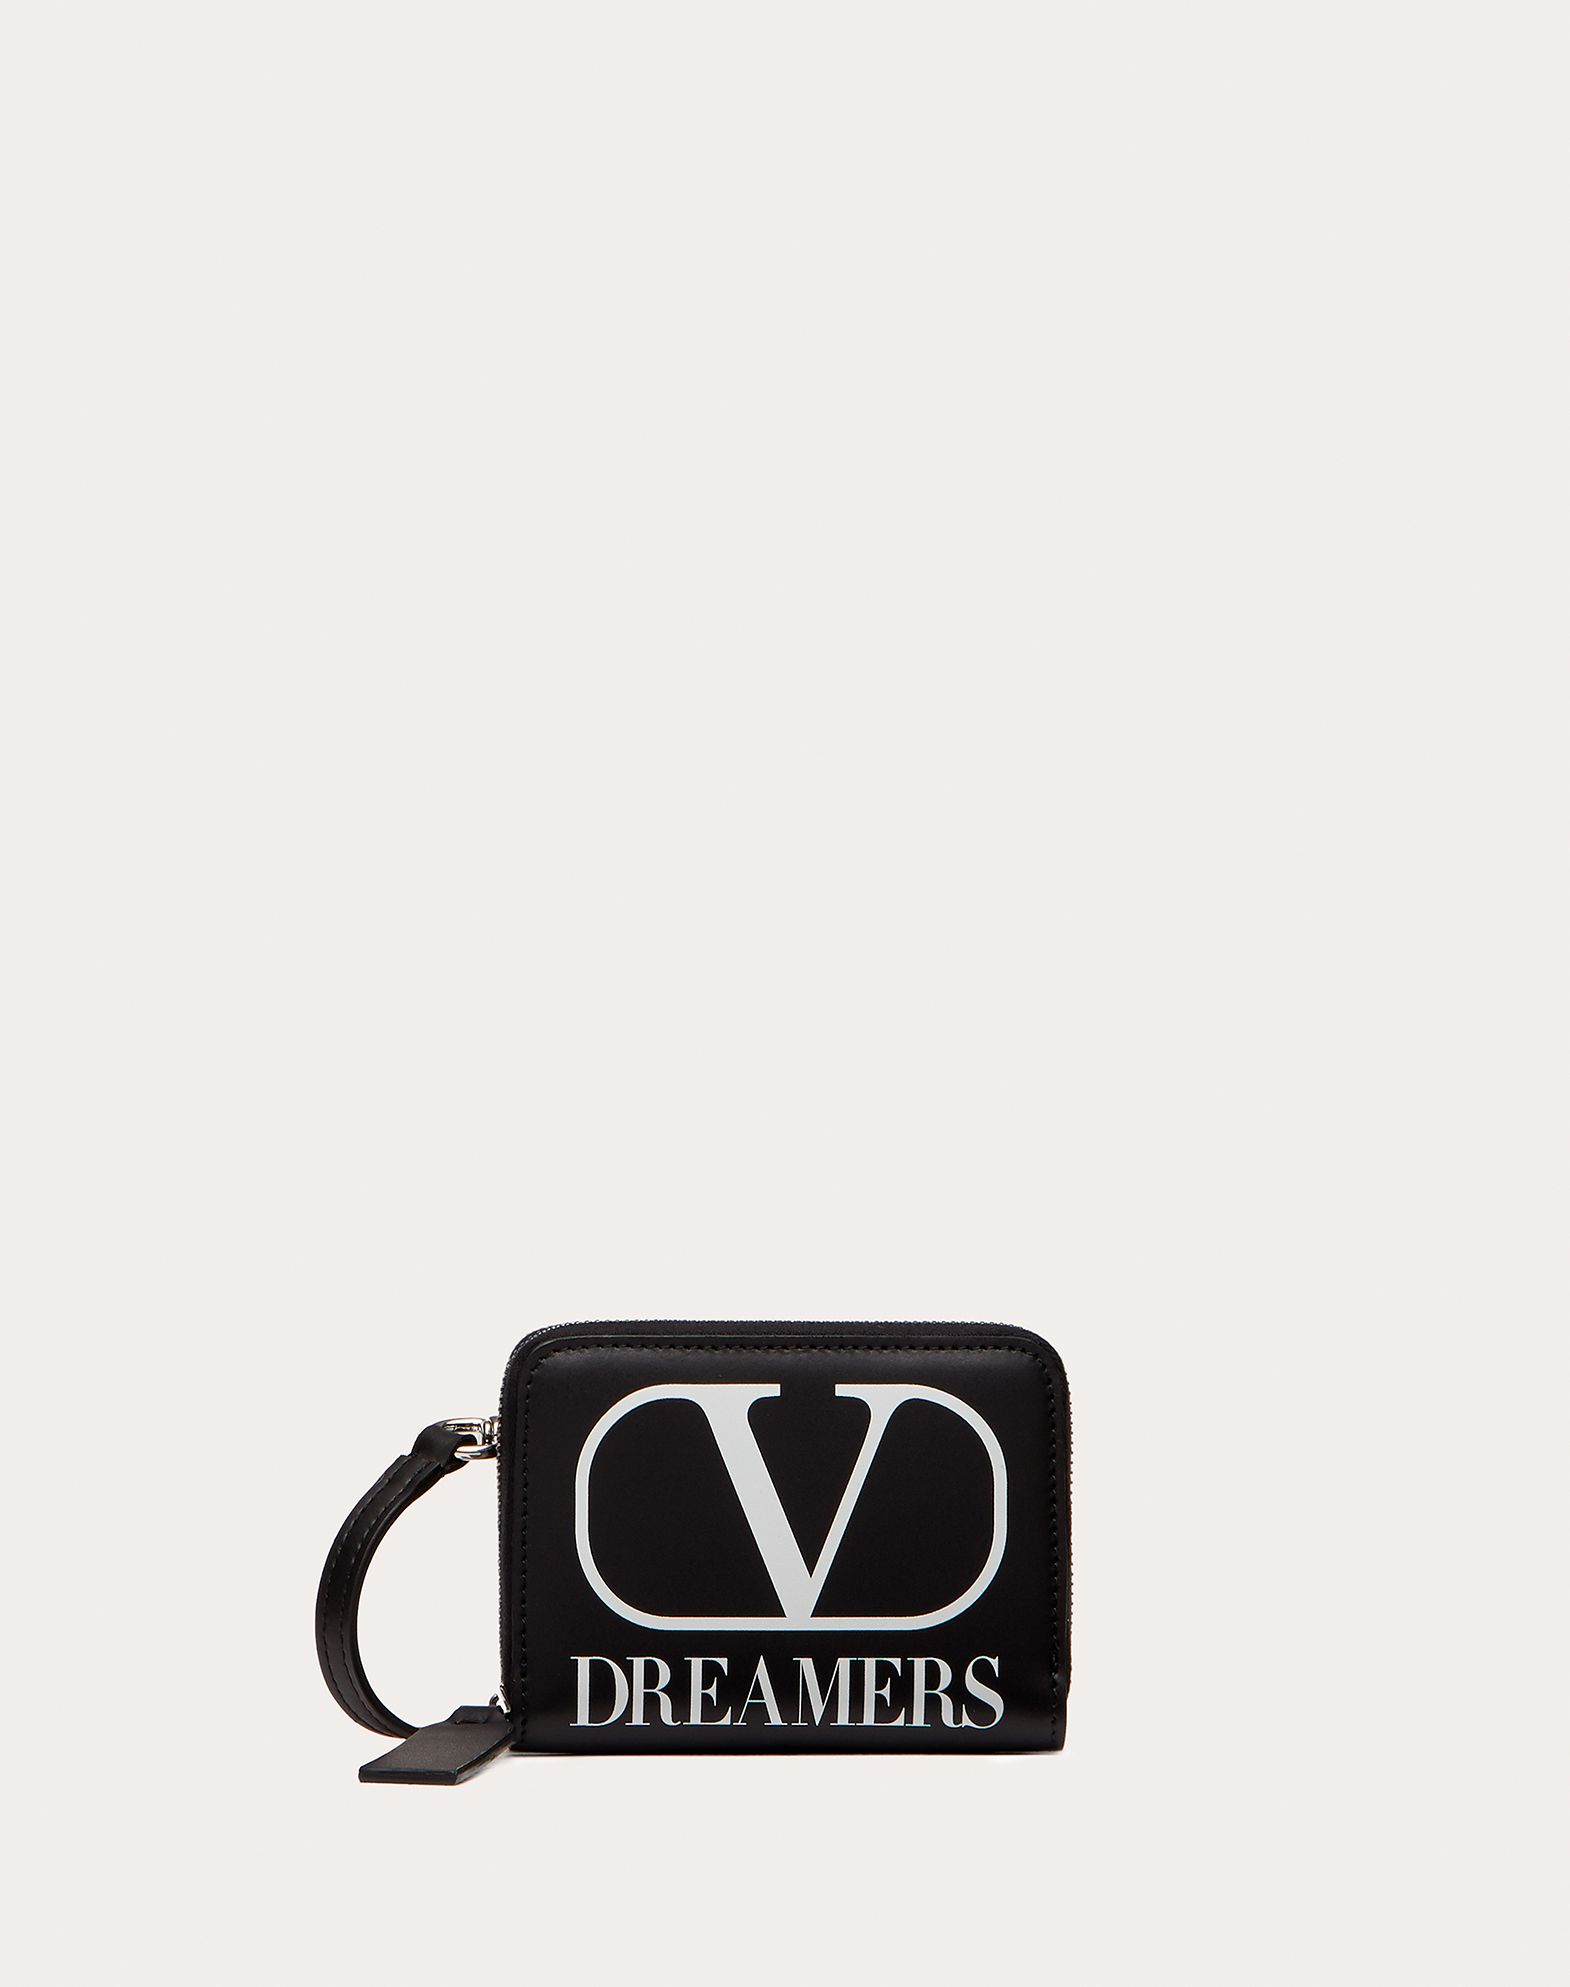 VLOGO Dreamers Wallet with Neck Strap